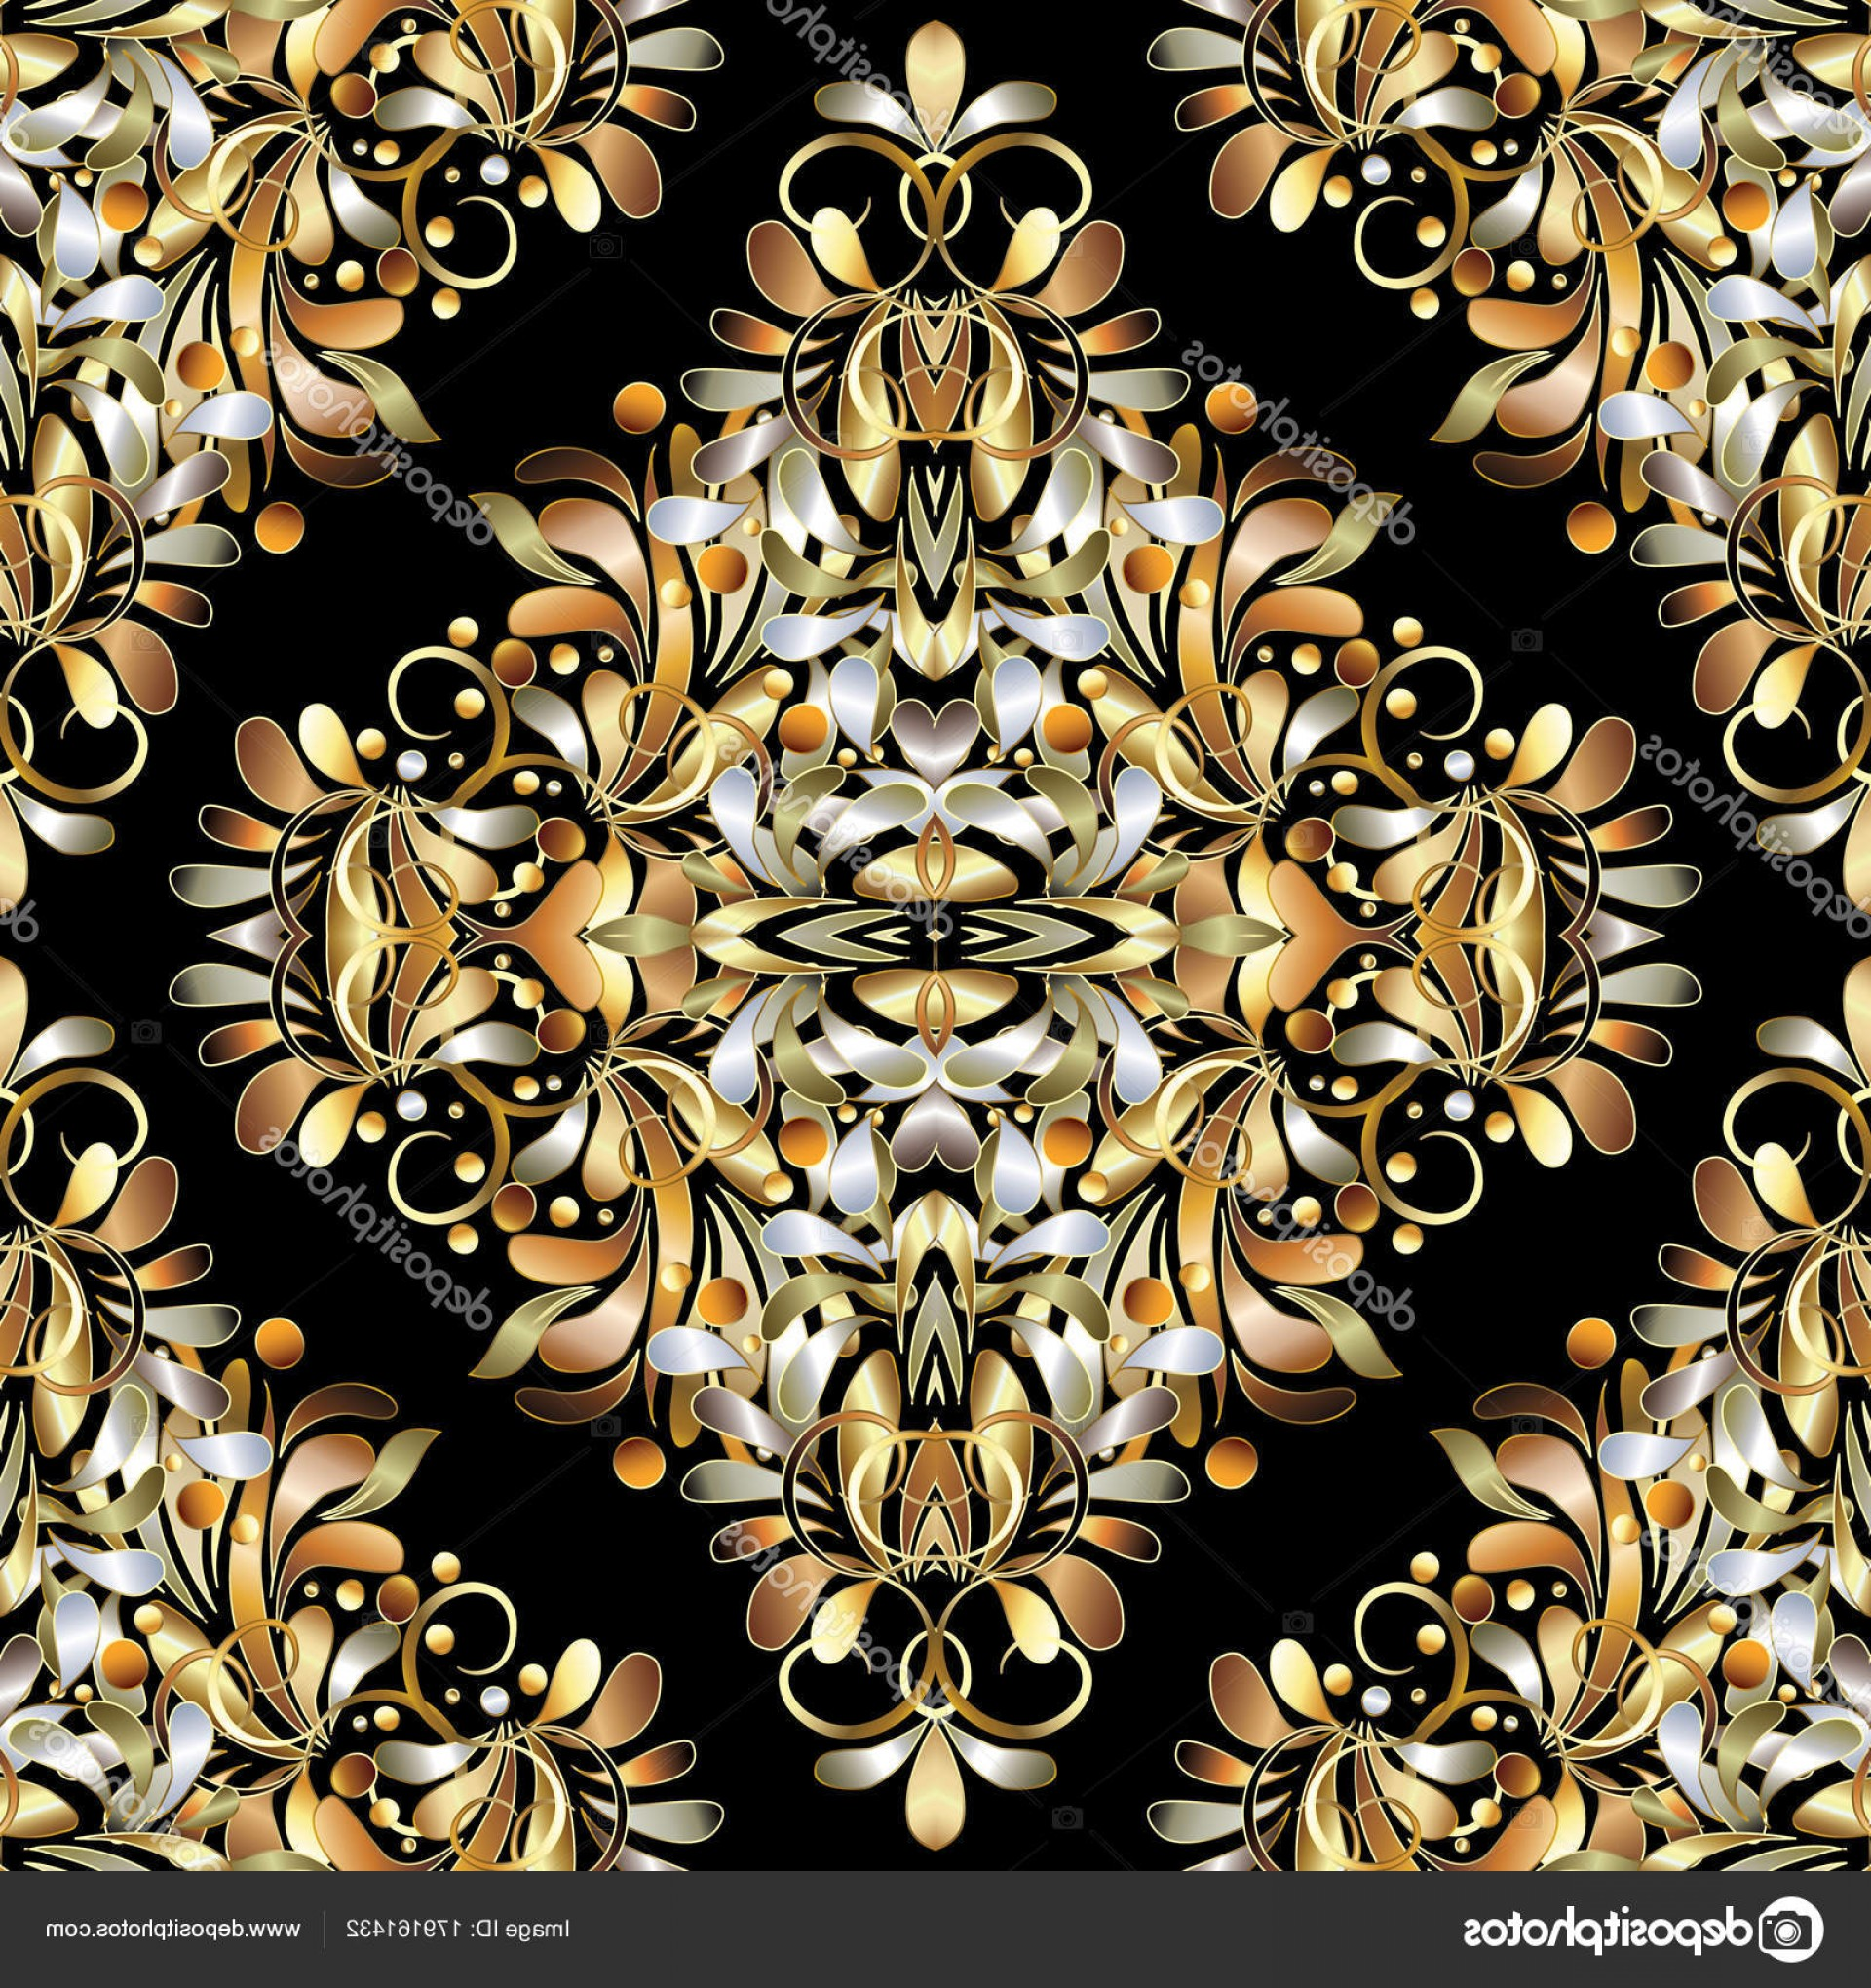 Paisley Swirl Flower Vector: Stock Illustration Gold Vintage D Floral Seamless